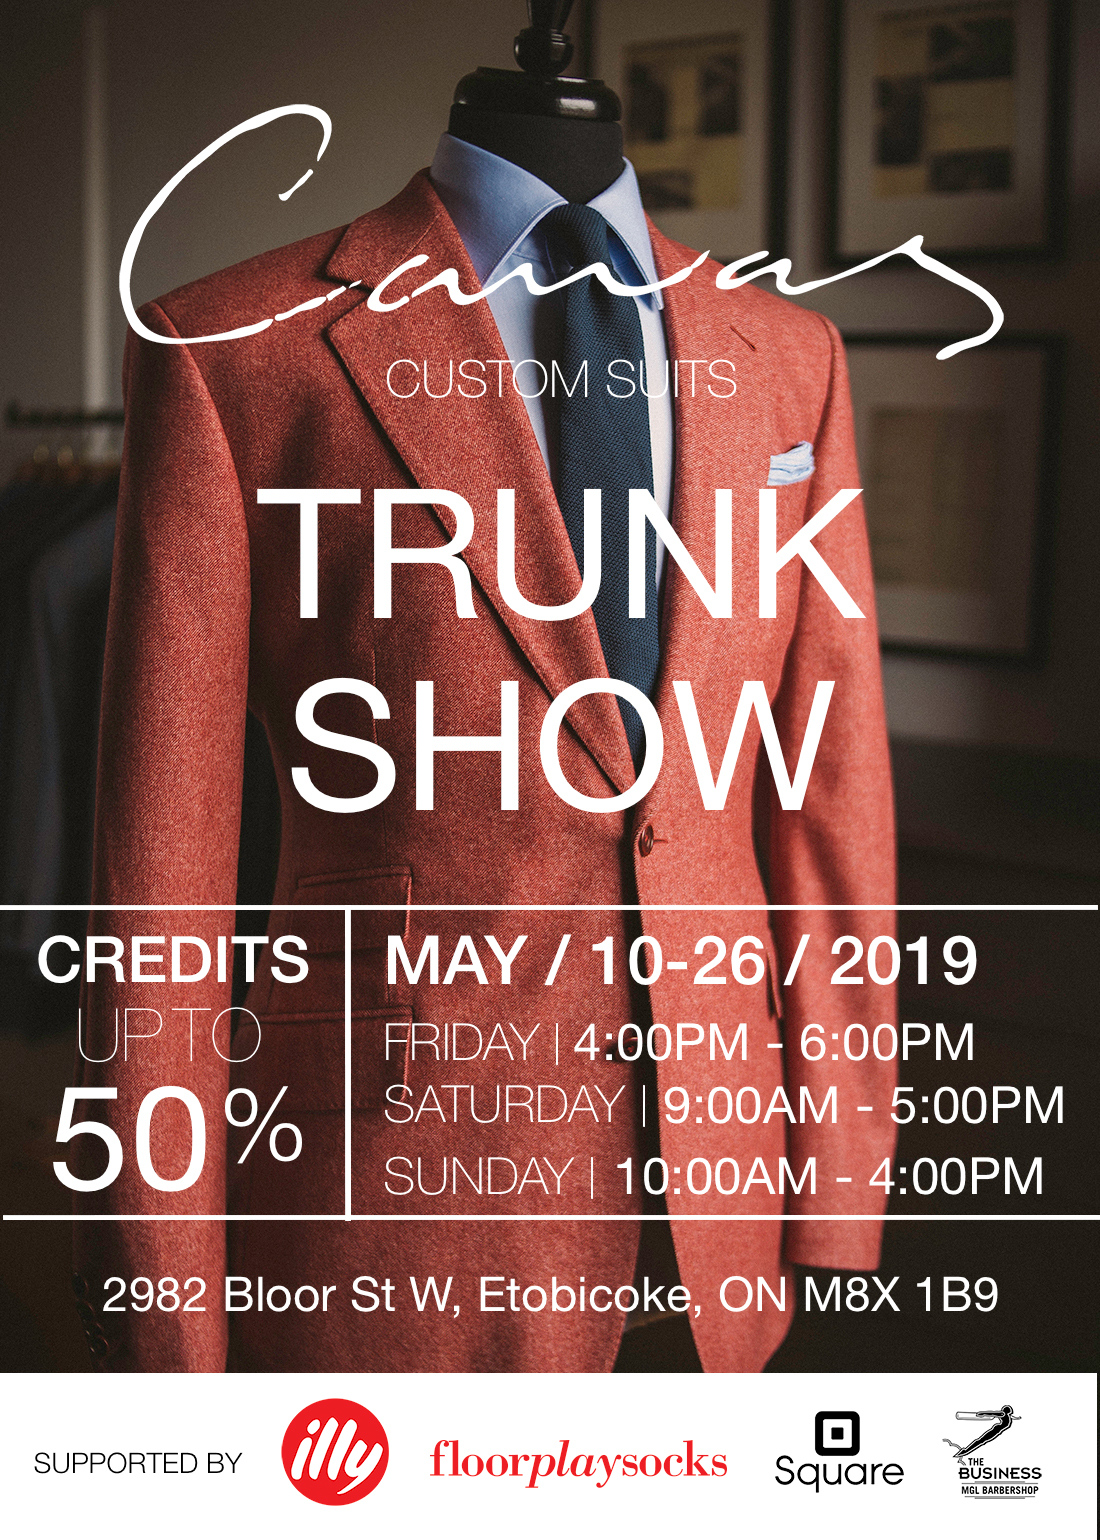 Trunk Show Newsletter 7x5Formatted.jpg